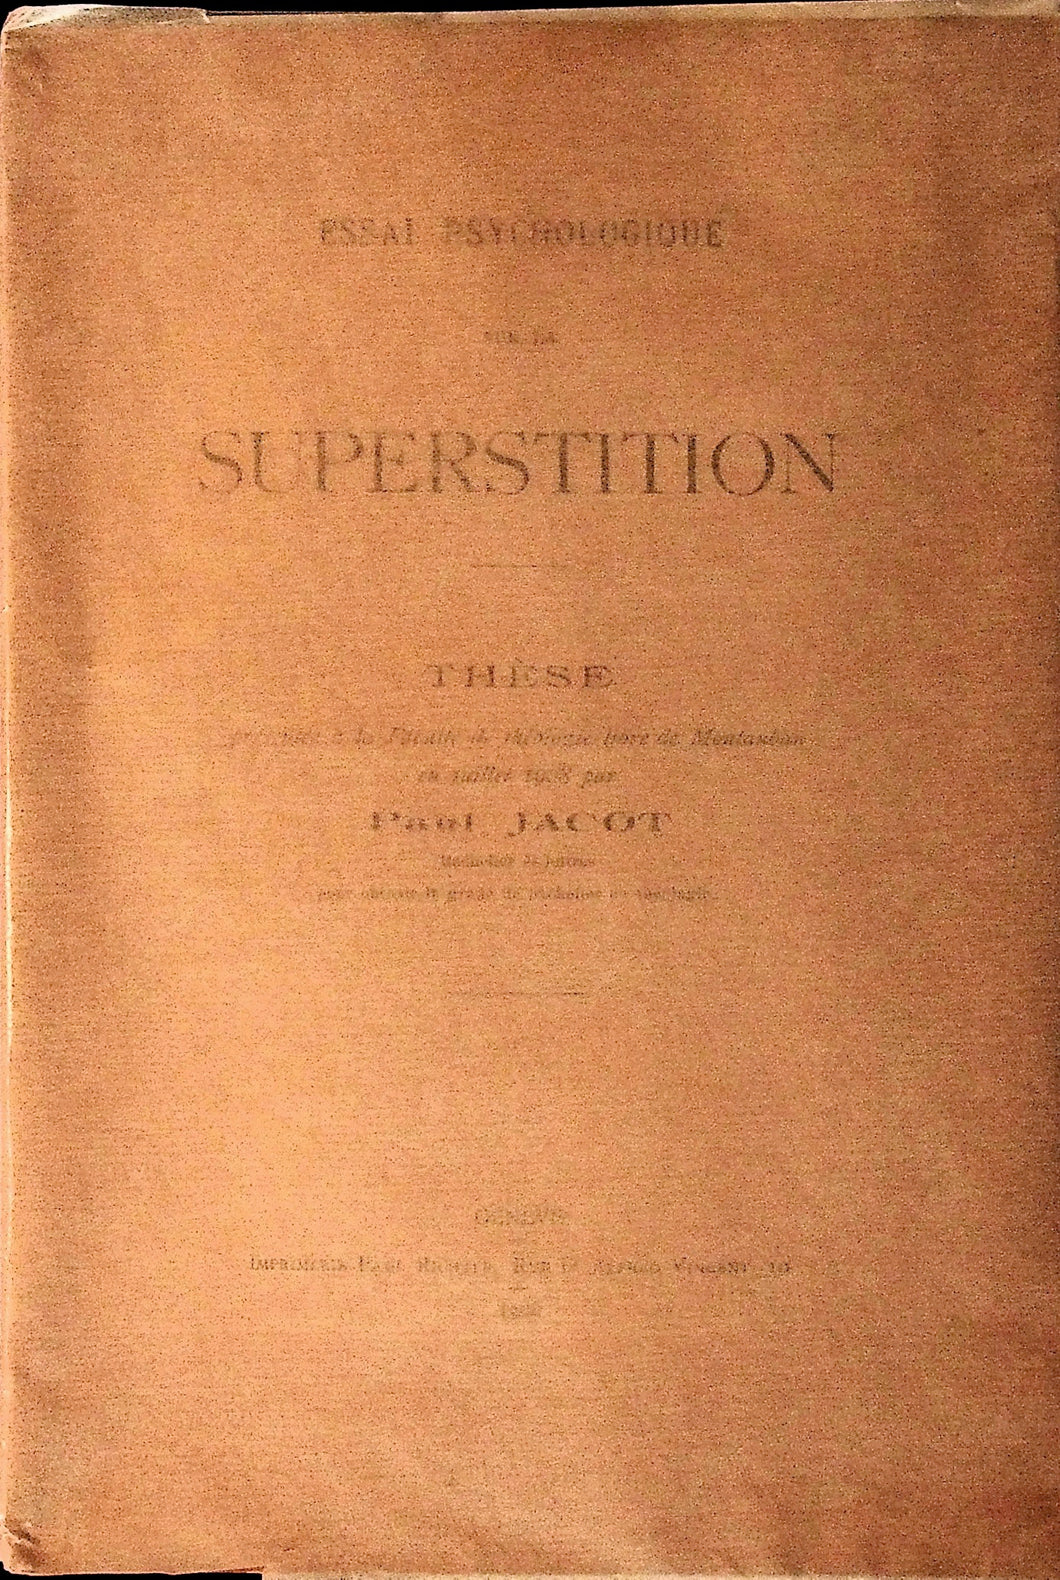 JACOT (Paul). Essai psychologique sur la superstition